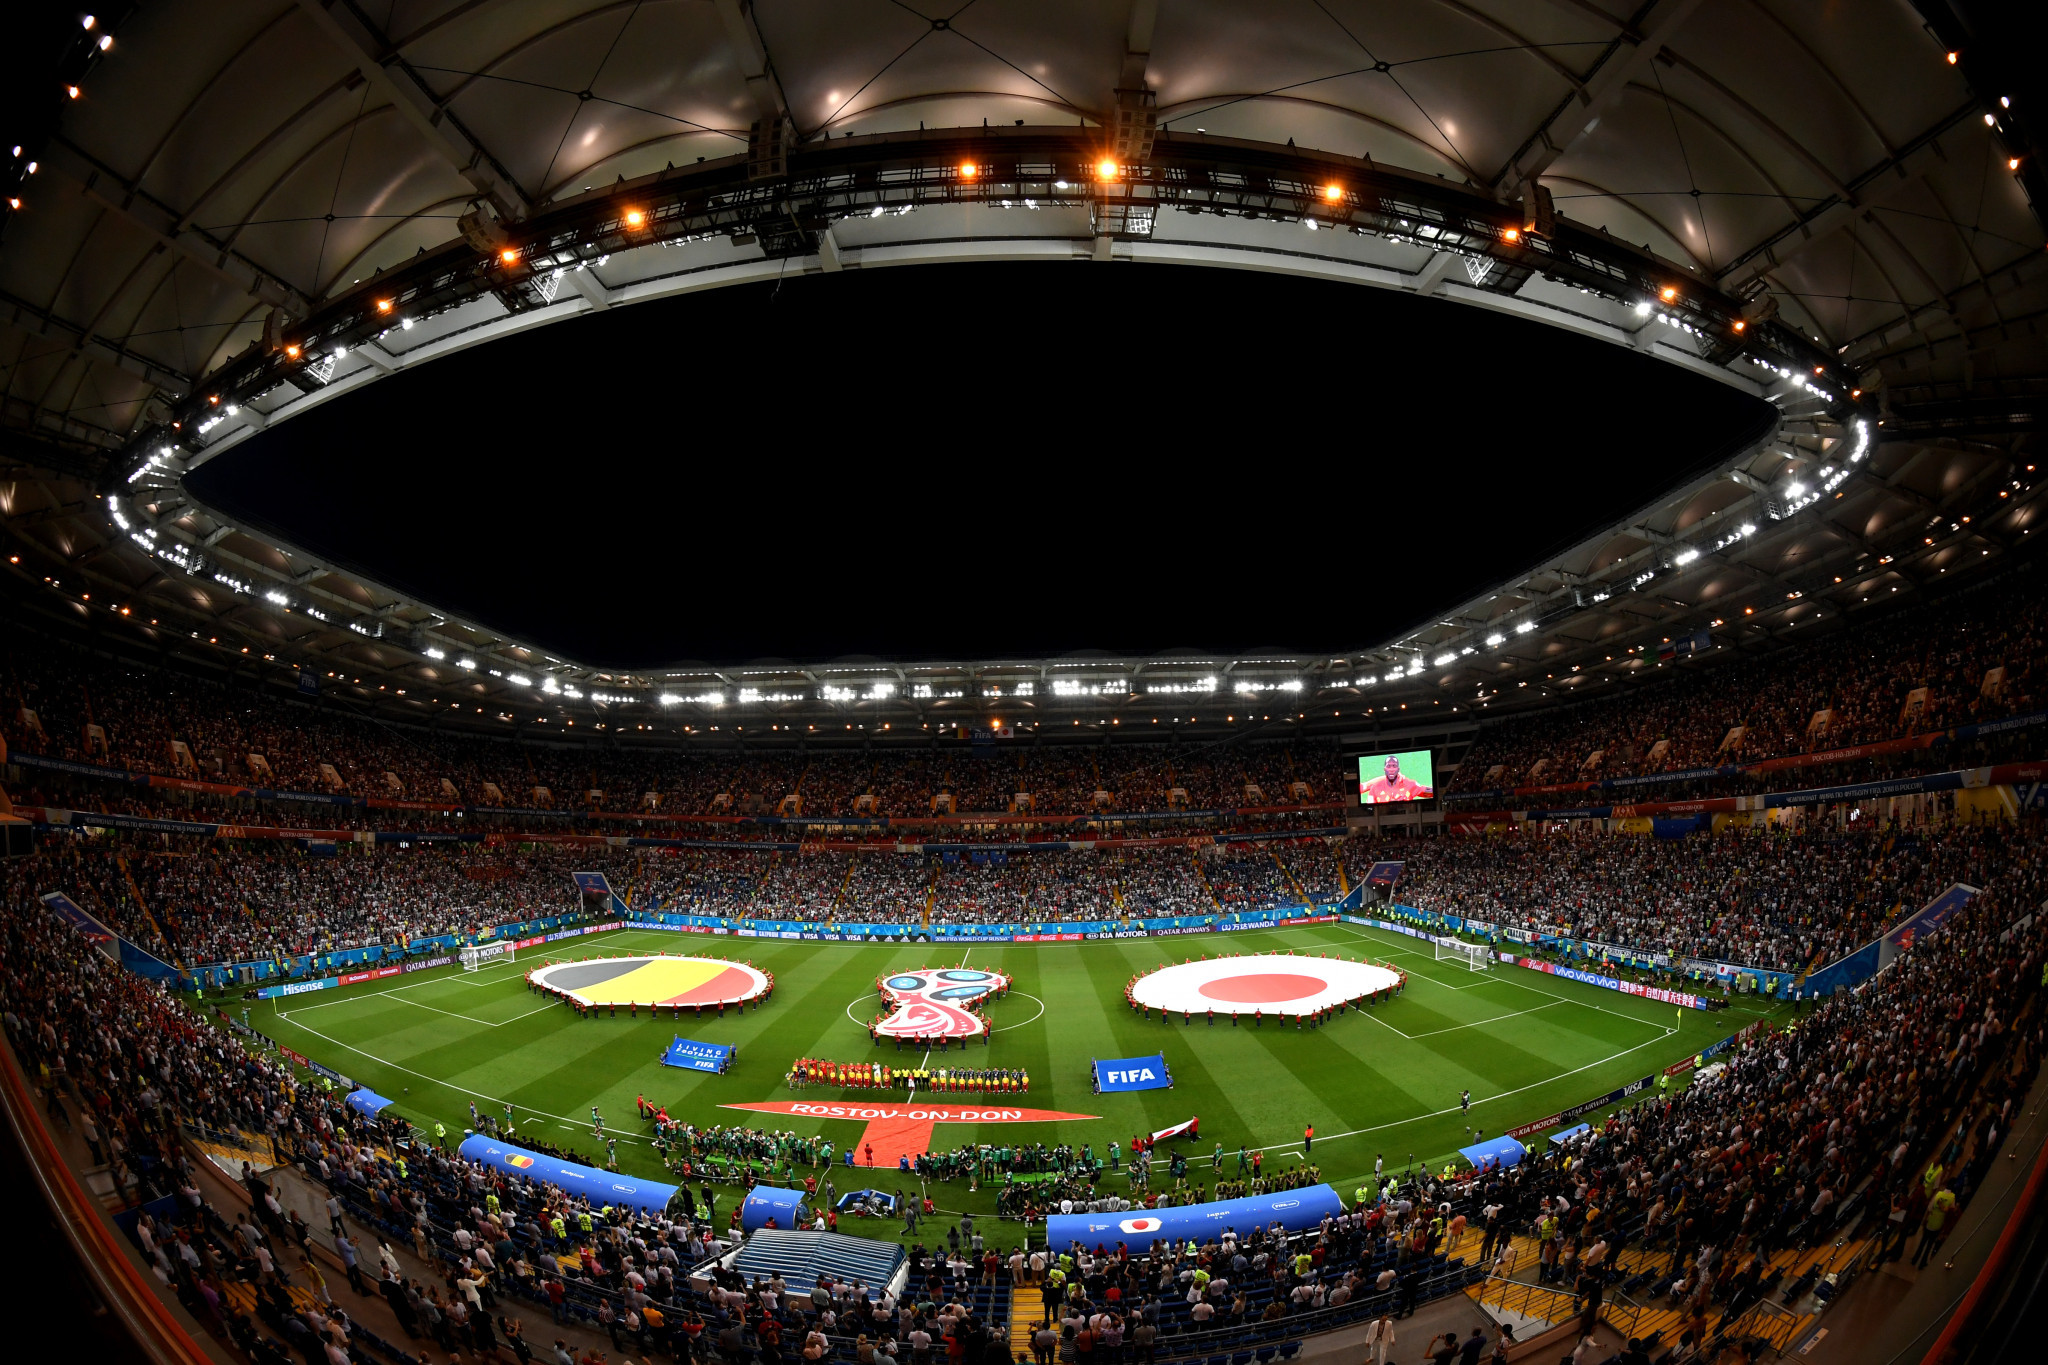 FIFA claim average of 98 per cent stadium occupancy during World Cup group stage